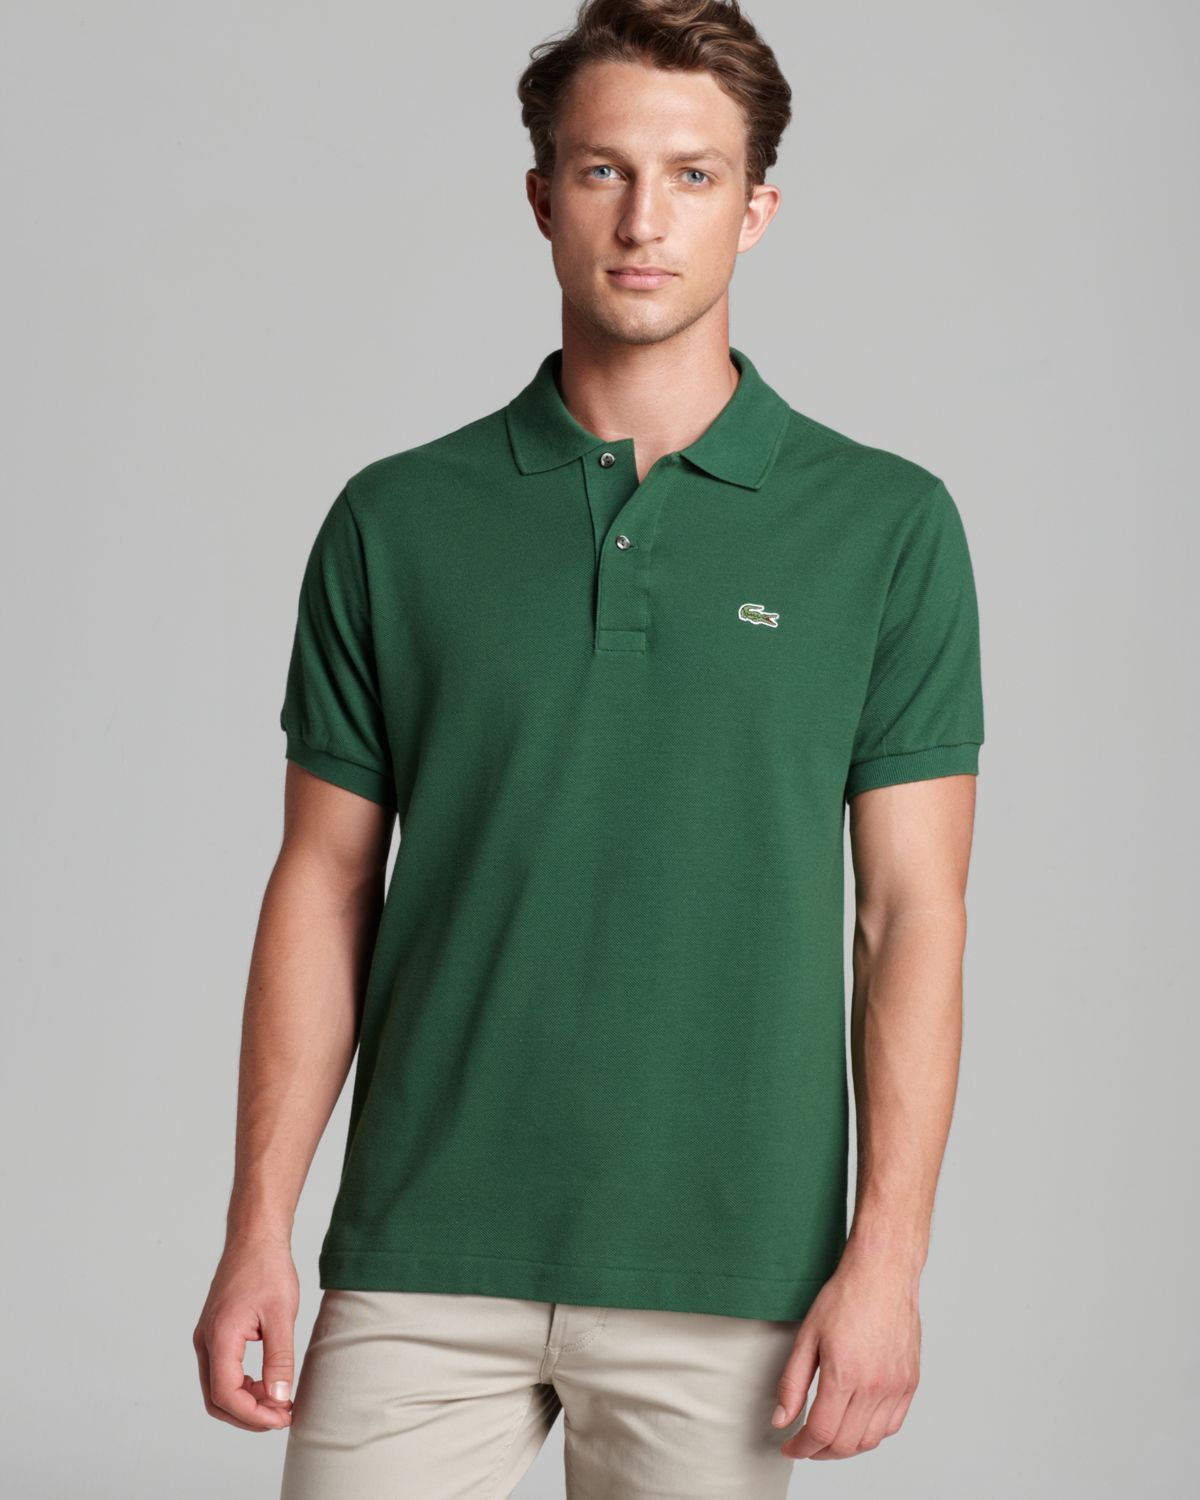 4a5a9628b029 Lyst - Lacoste Short Sleeve Piqué Polo Shirt - Classic Fit in Green ...